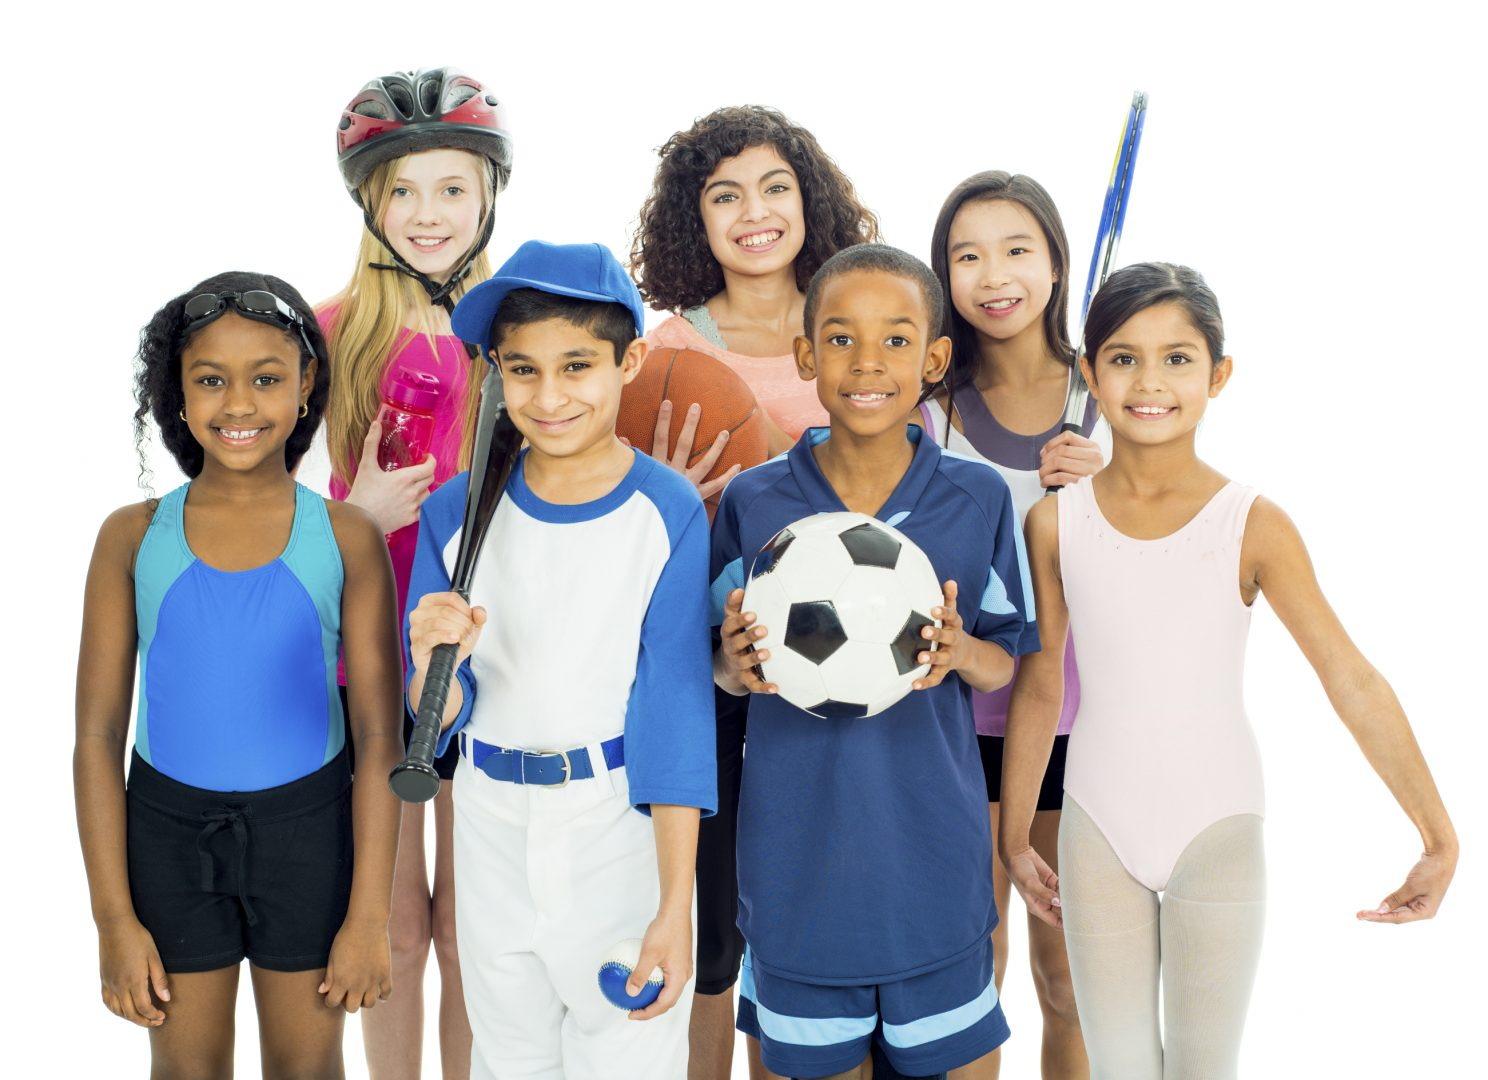 I Am Looking For A Sport For My Son But He Cannot Seem To